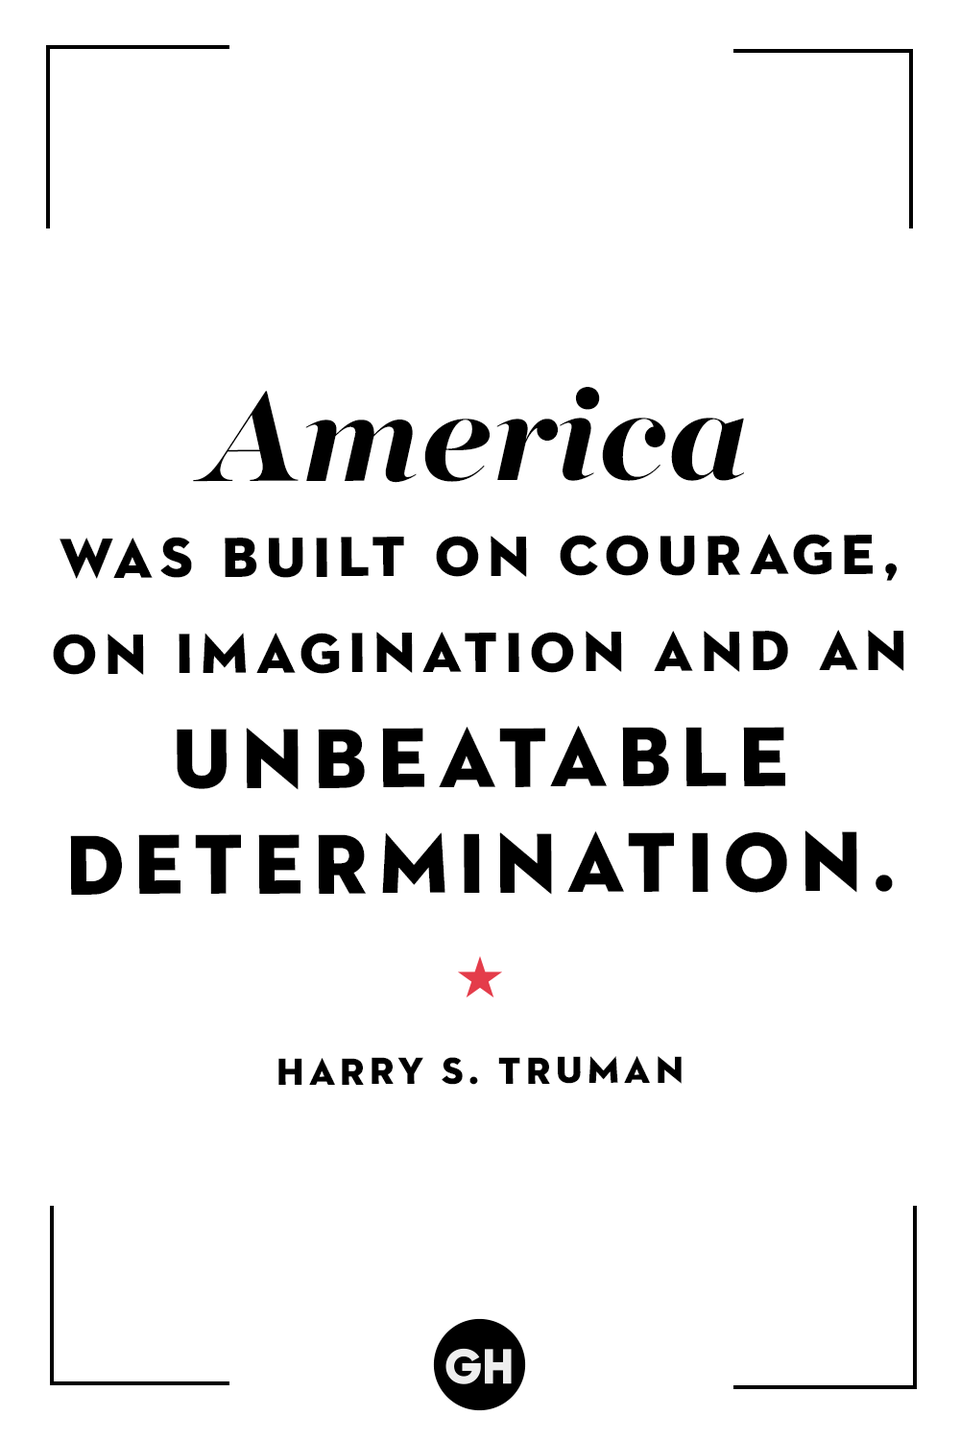 <p>America was built on courage, on imagination and an unbeatable determination.</p>